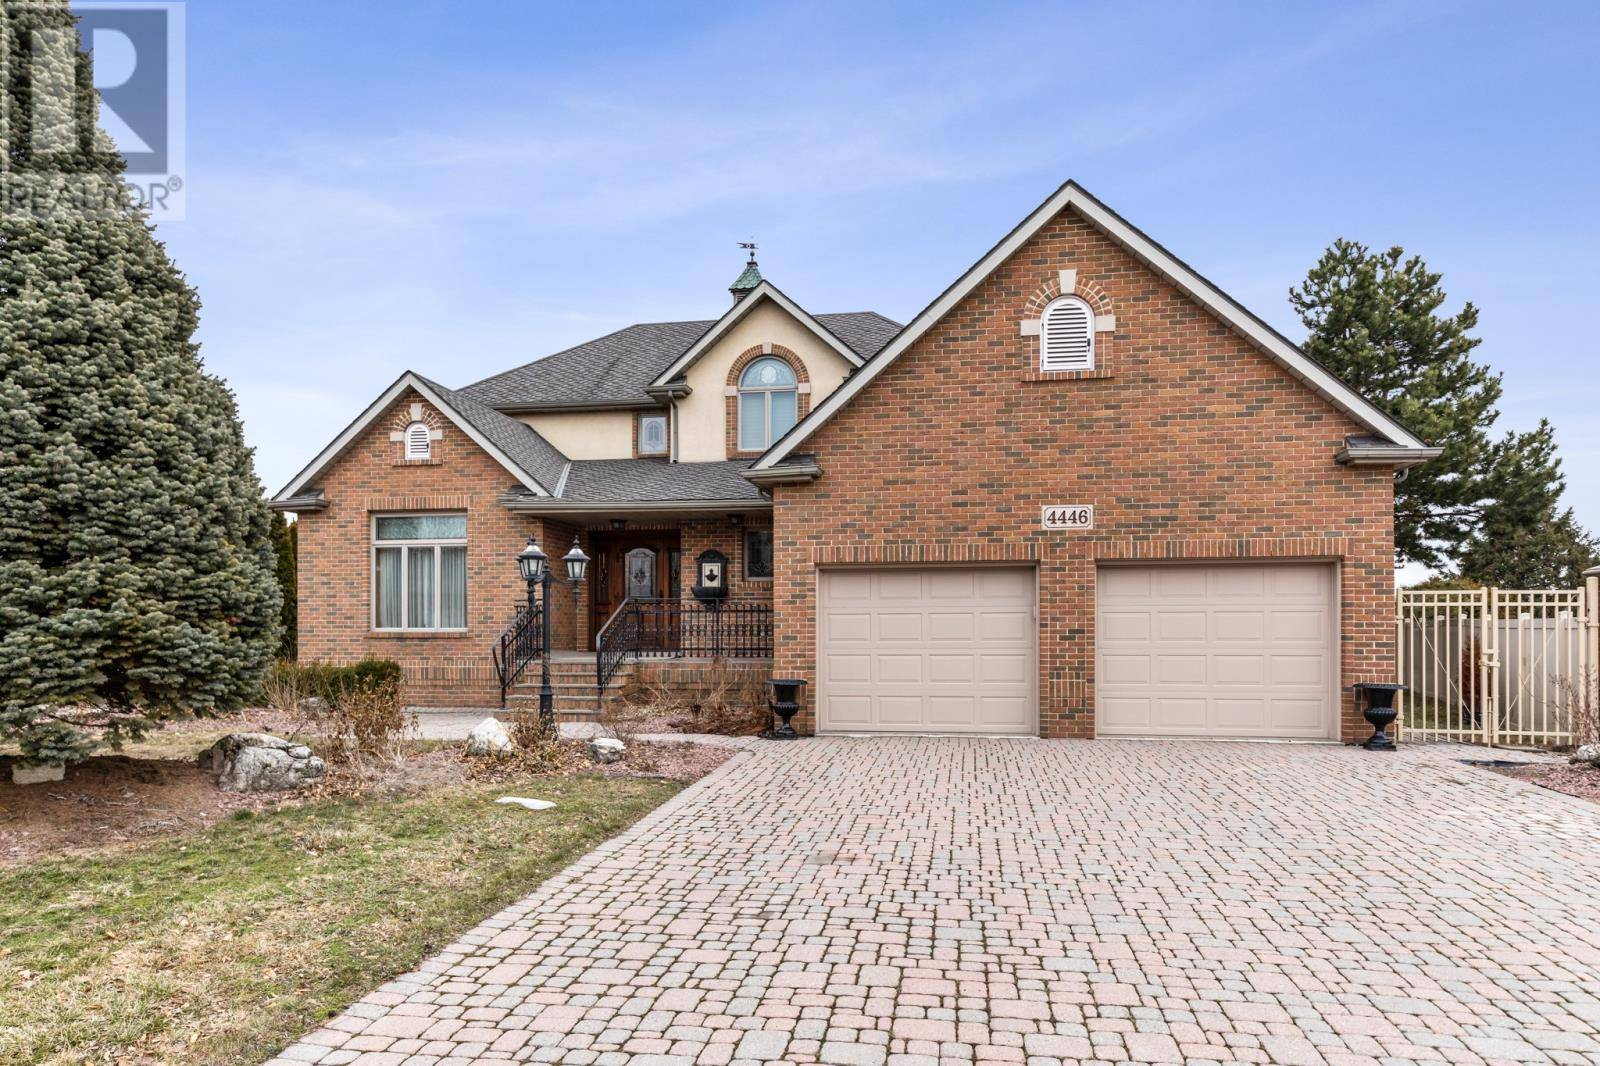 House for sale at 4446 Villa Paradiso Cres Windsor Ontario - MLS: 20002394